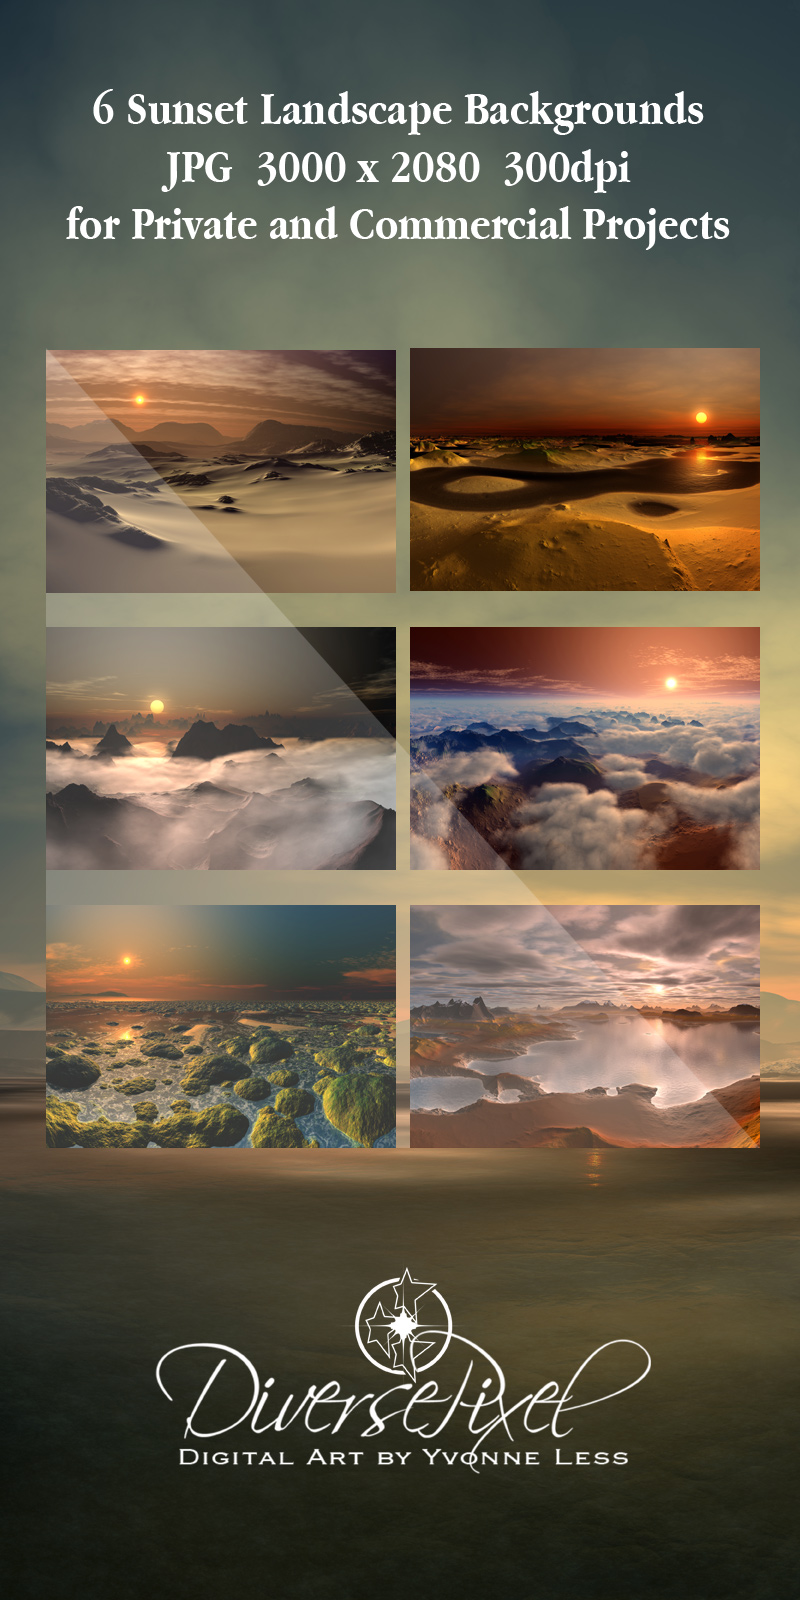 6x 2D Sunset Landscape Backgrounds